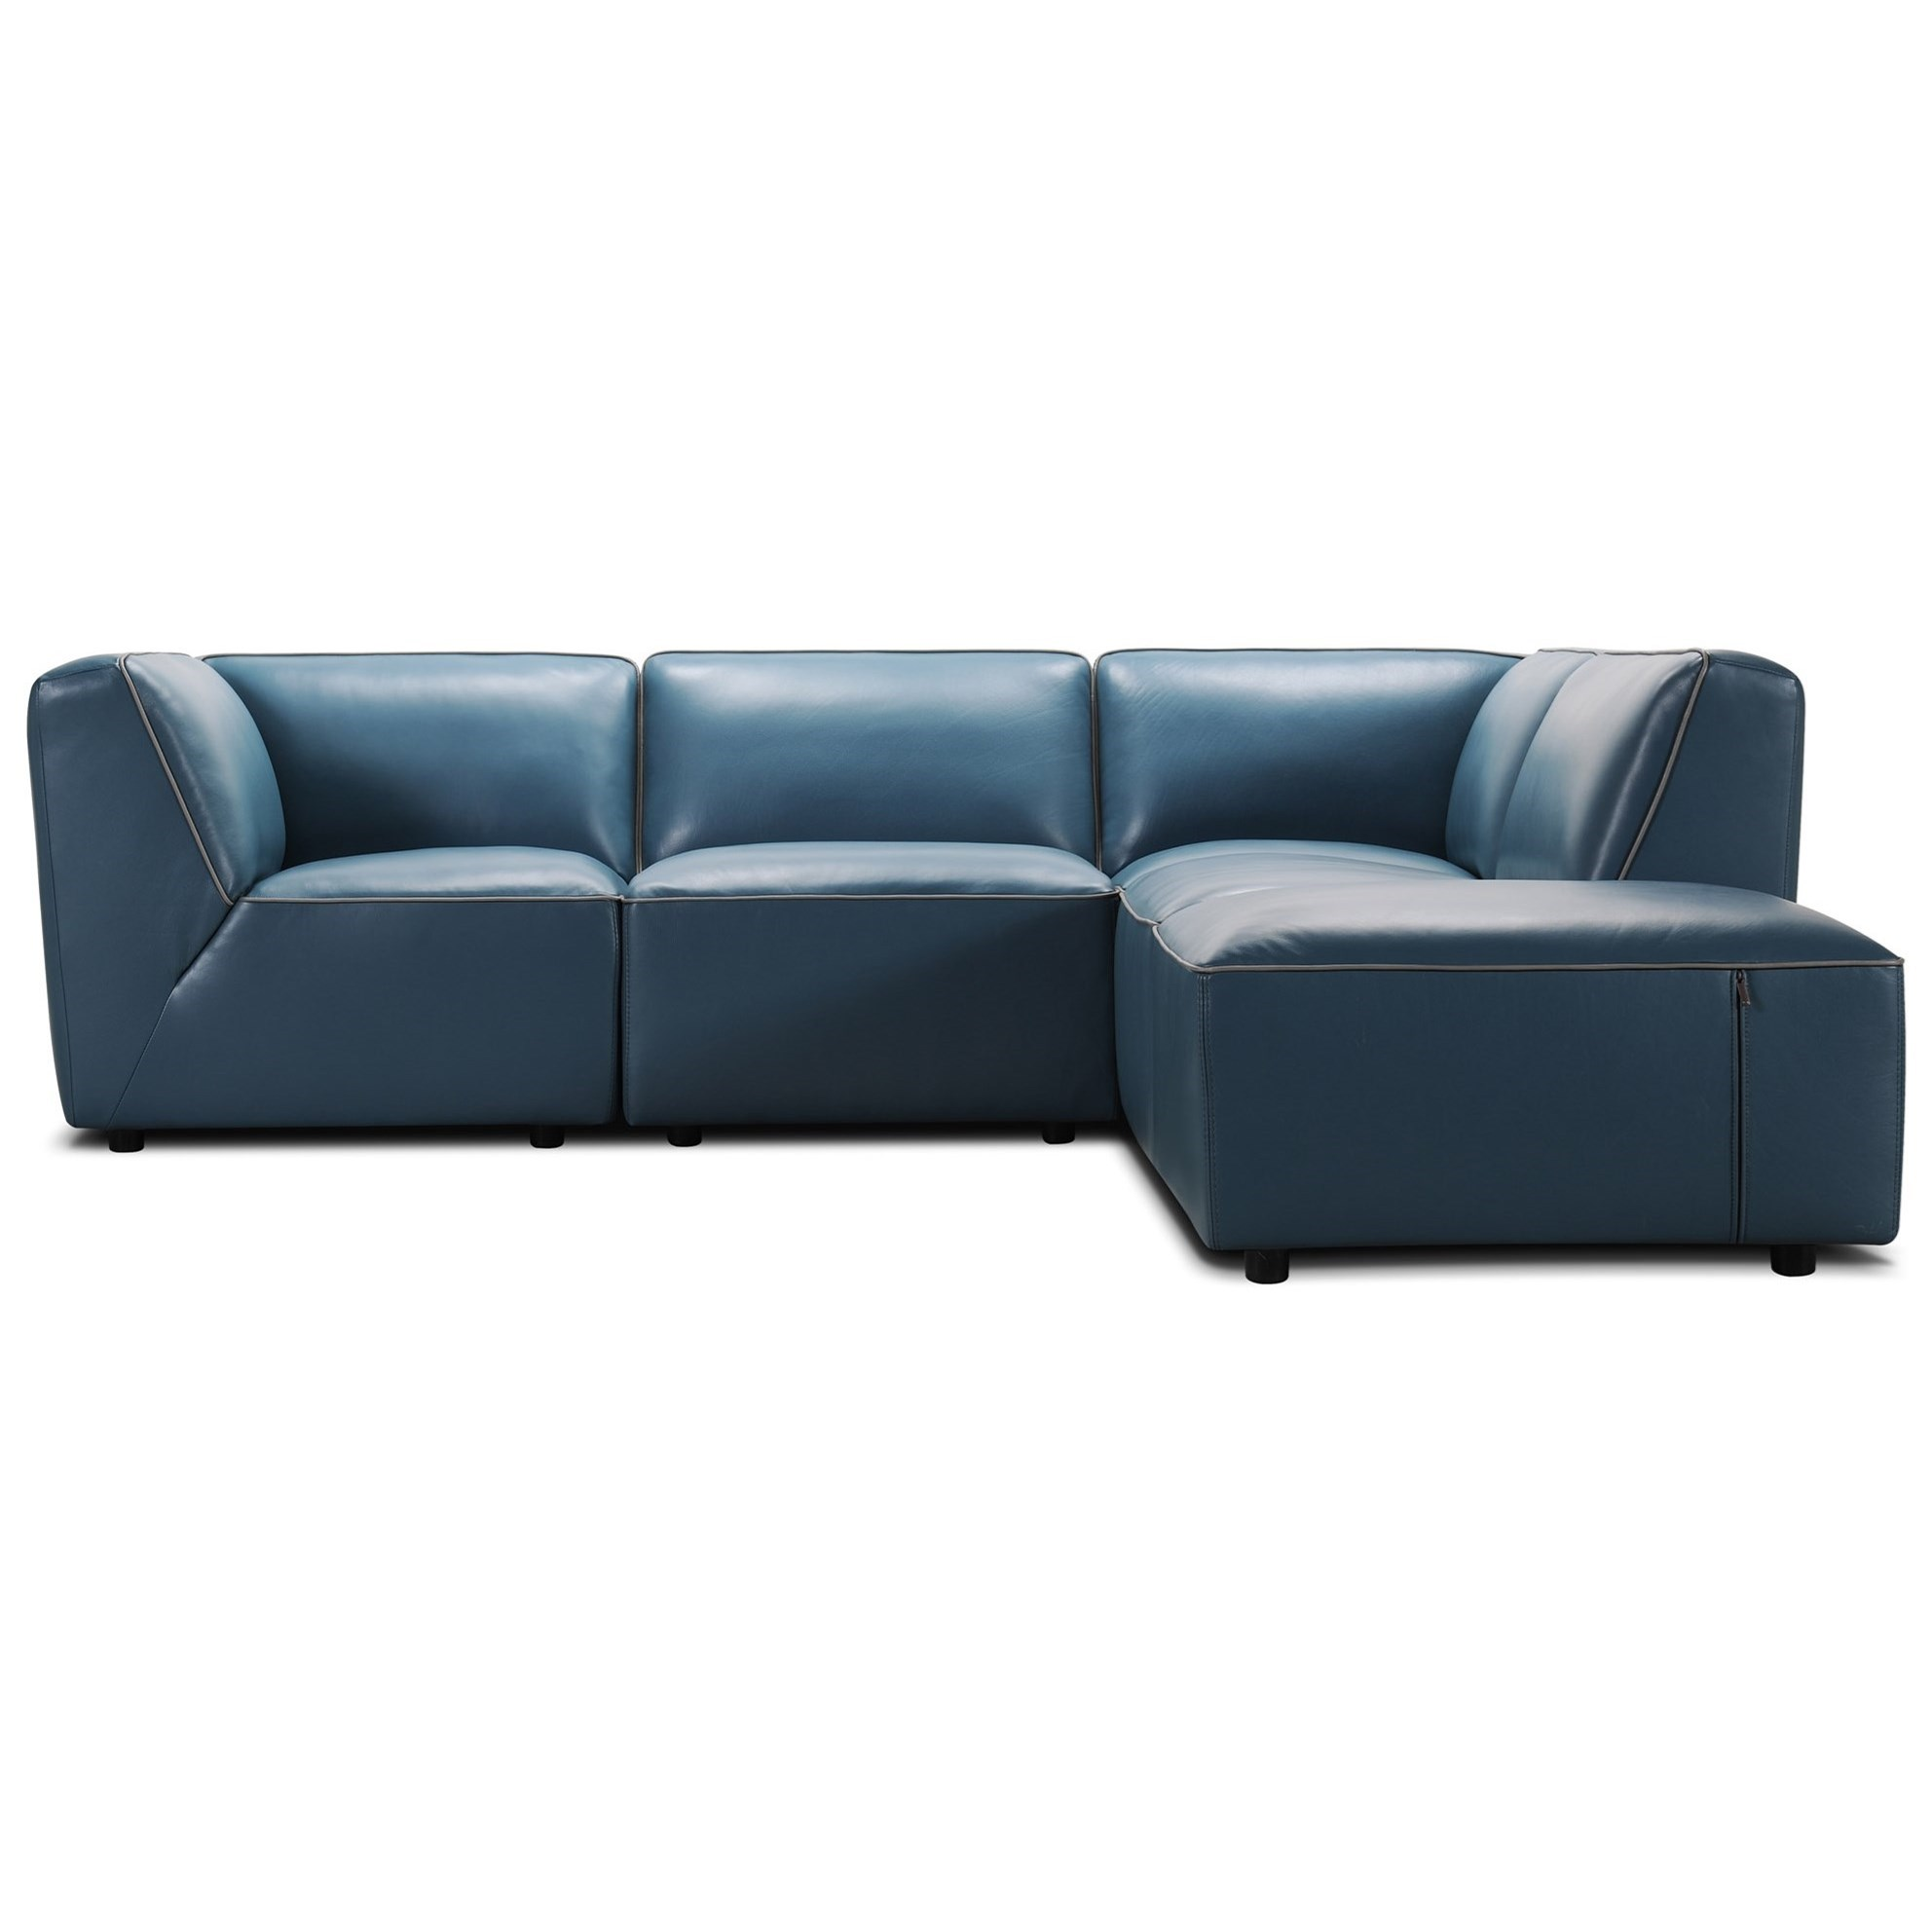 Violino Ellie Sectional HomeWorld Furniture Sectional Sofas